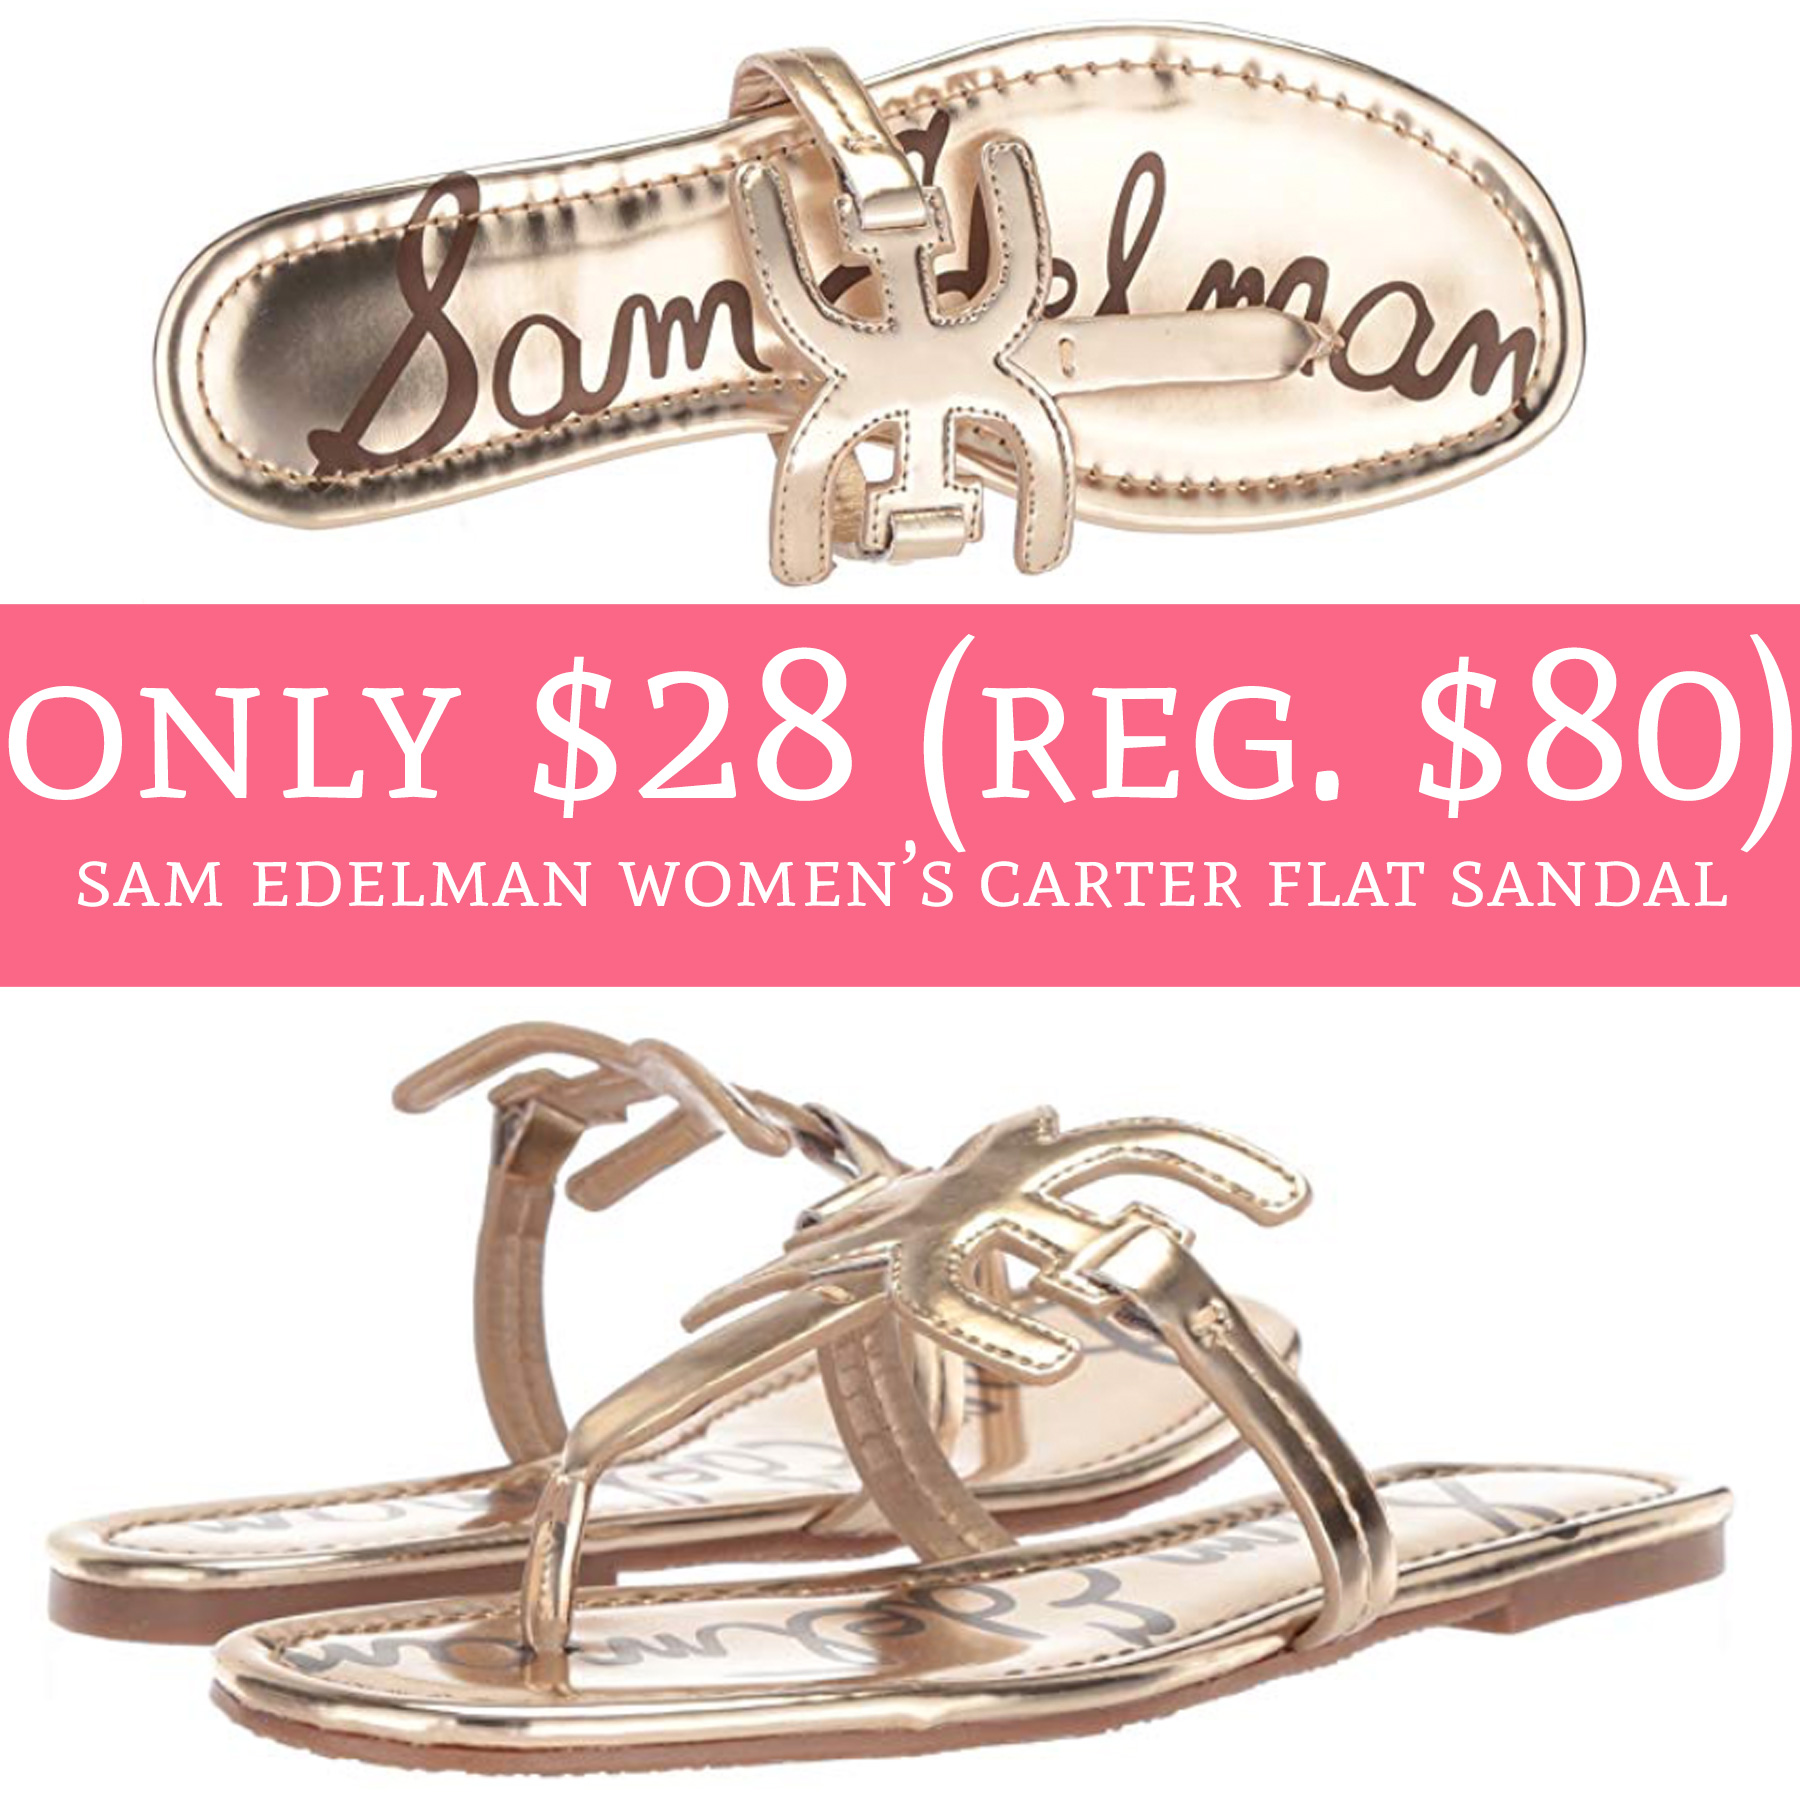 3c72d7f1104 Lowest price alert!! Hurry over to Amazon.com where you can order Sam  Edelman Women s Carter Flat Sandal ...